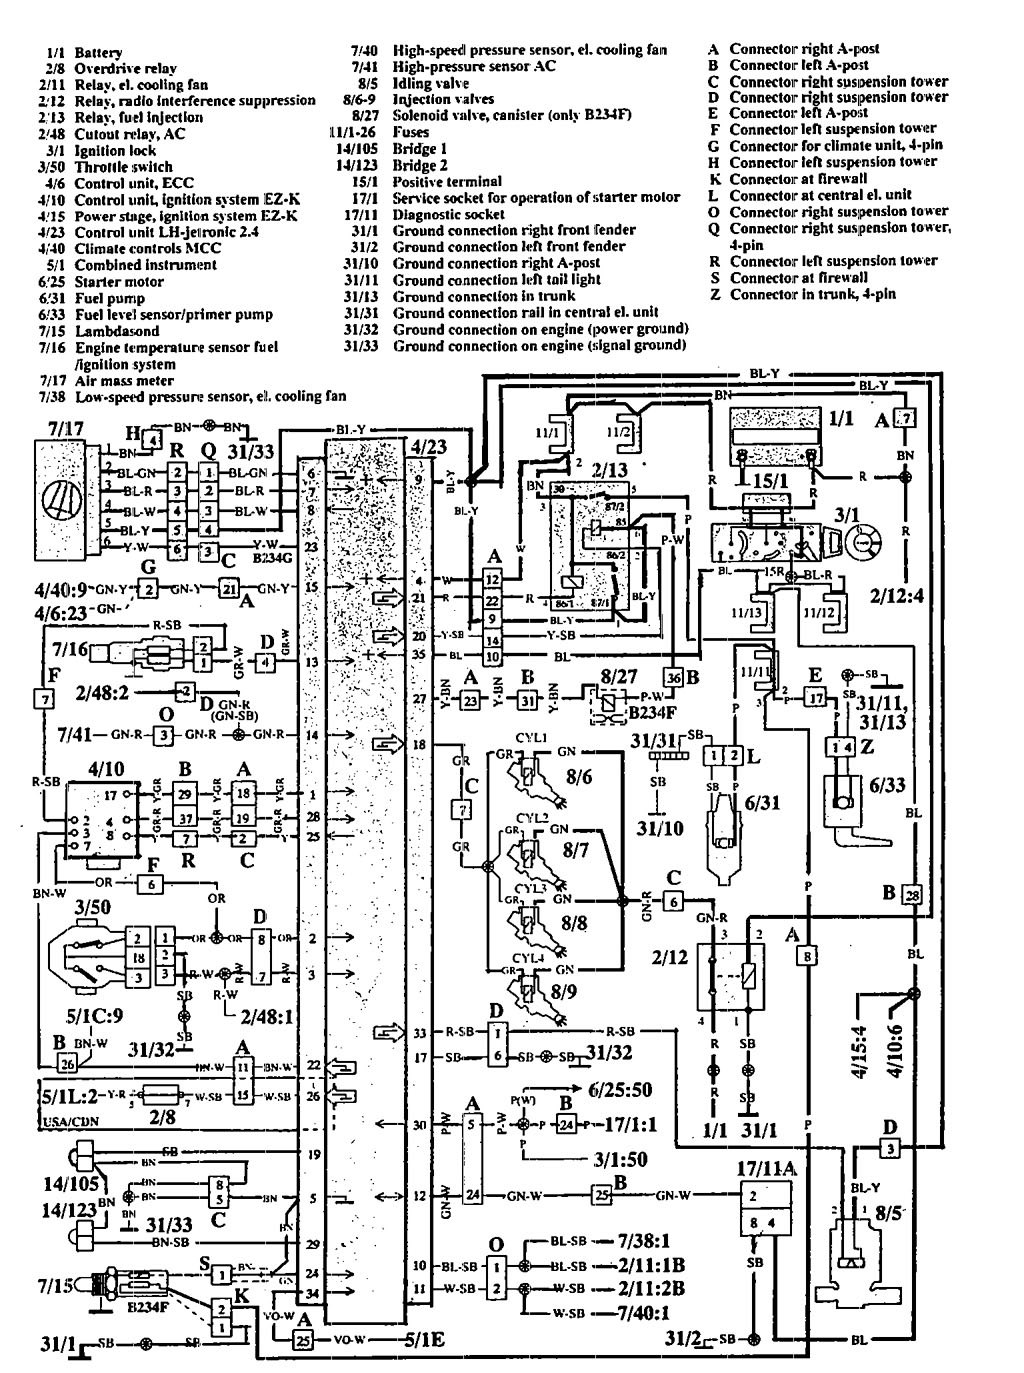 volvo 940 1995 fuse box diagram vehicle wiring diagrams 92 volvo 940 sedan 1994 volvo 940 fuse diagram wiring info \\u2022 1995 960 station wagon 1993 box